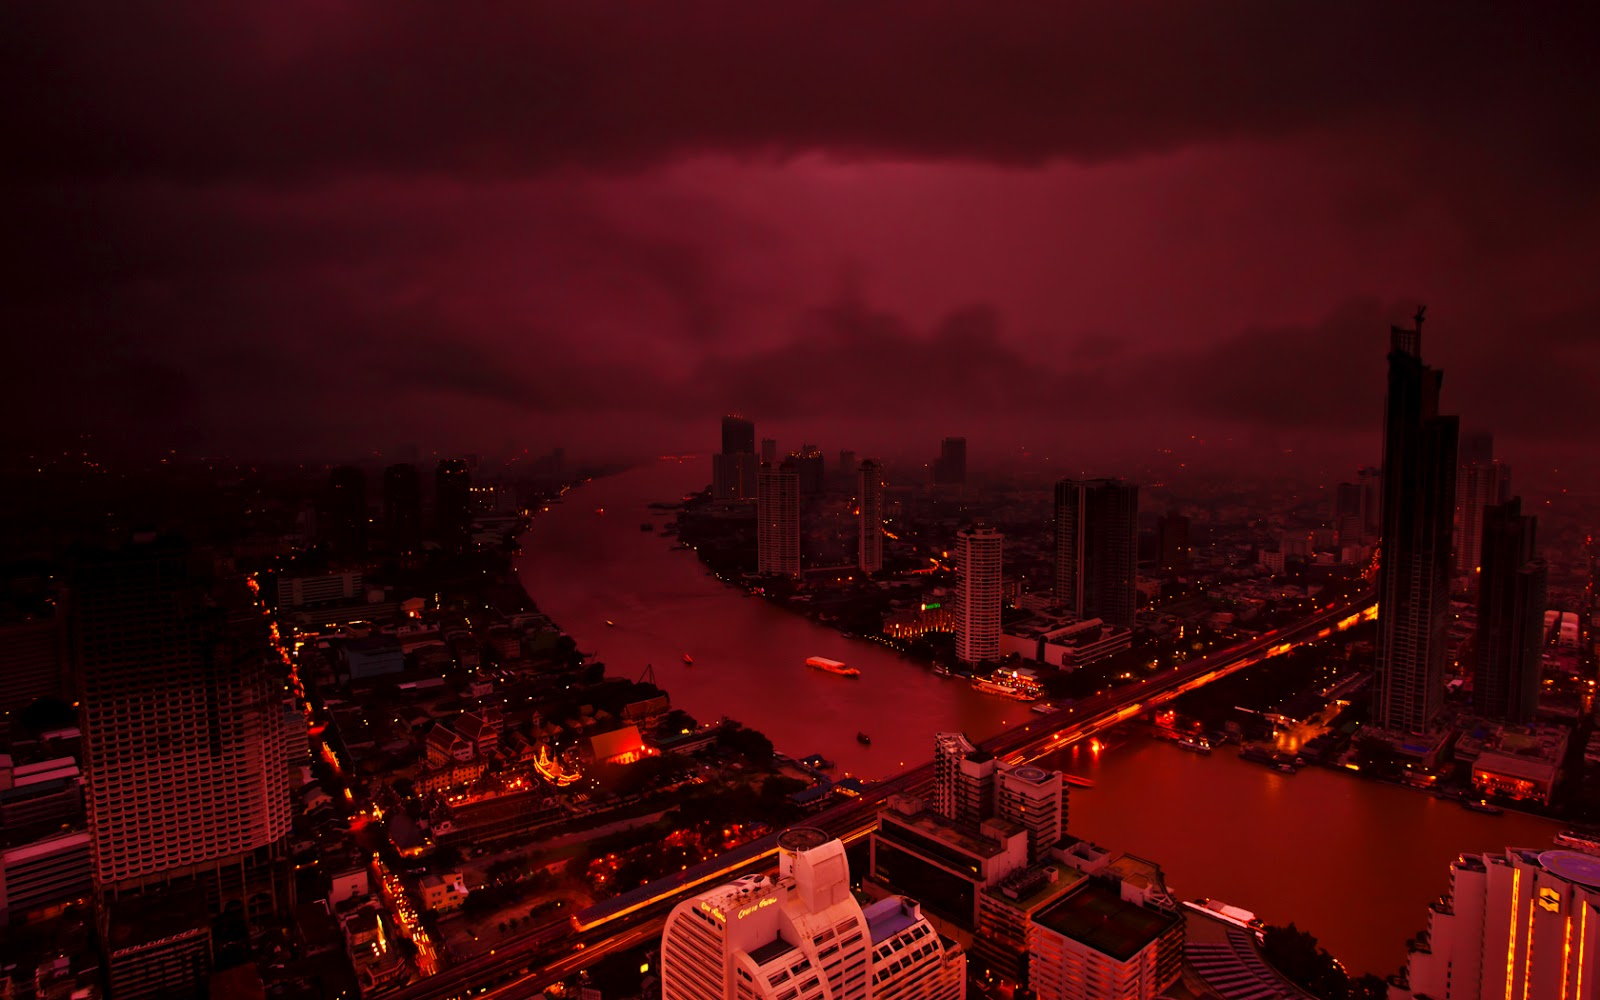 Bangkok Cityscapes Photograpy HD Wallpapers| HD Wallpapers ,Backgrounds ,Photos ,Pictures, Image ,PC